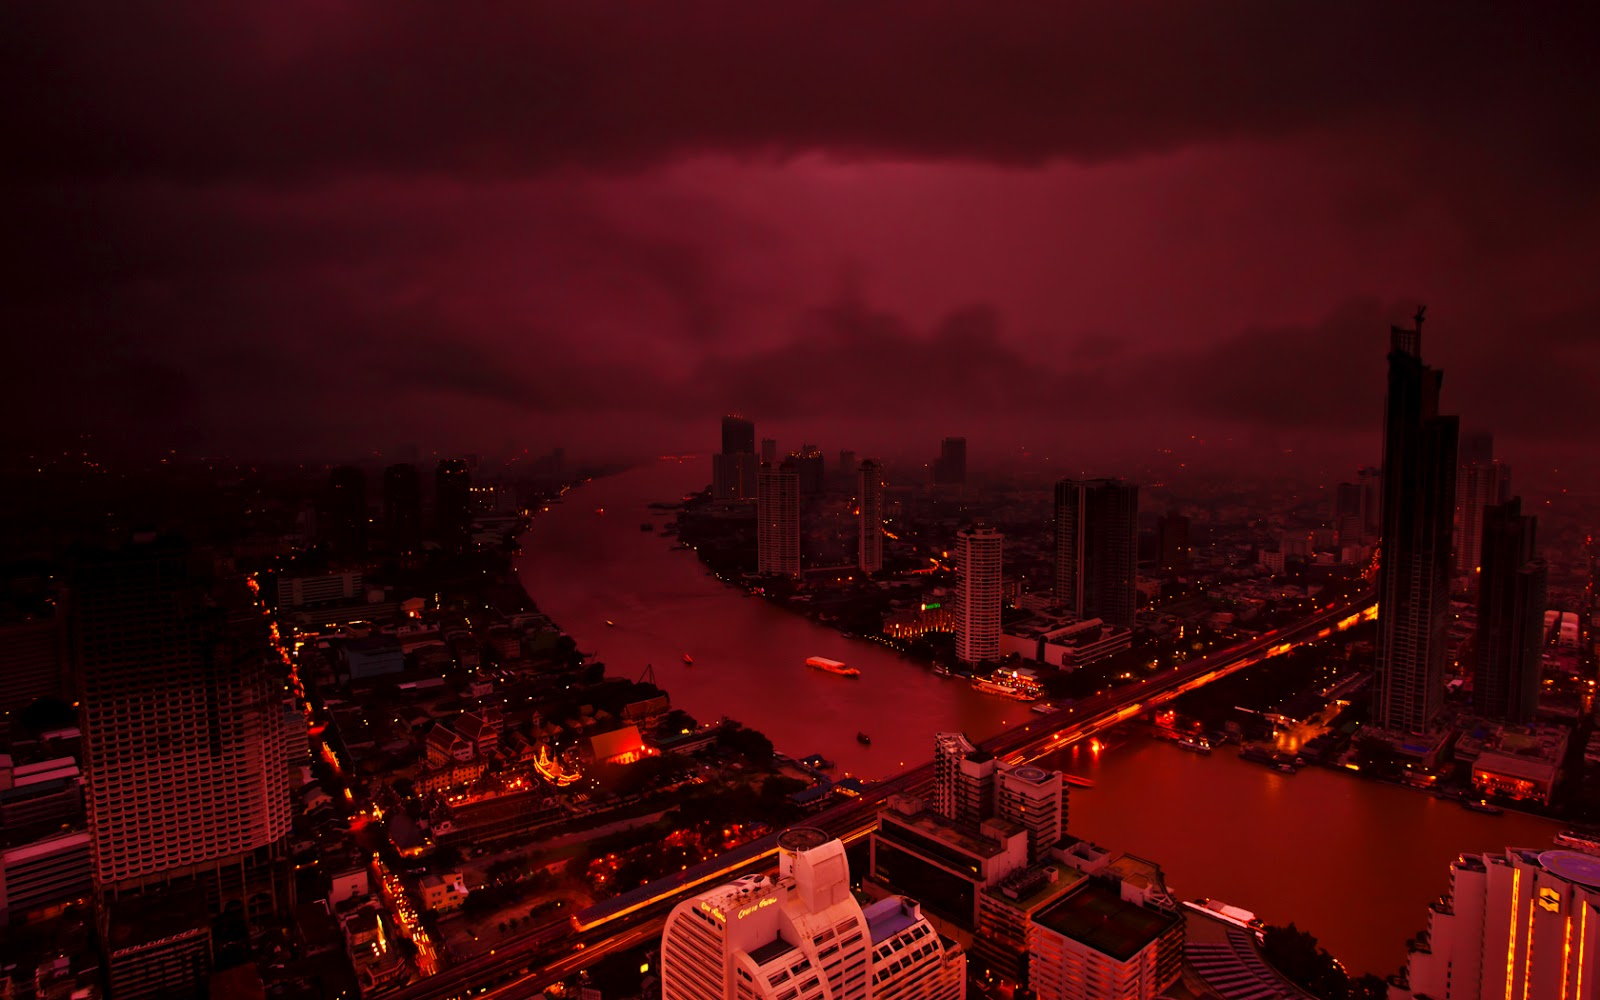 Bangkok Cityscapes Photograpy HD Wallpapers| HD Wallpapers ,Backgrounds ,Photos ,Pictures, Image ,PC